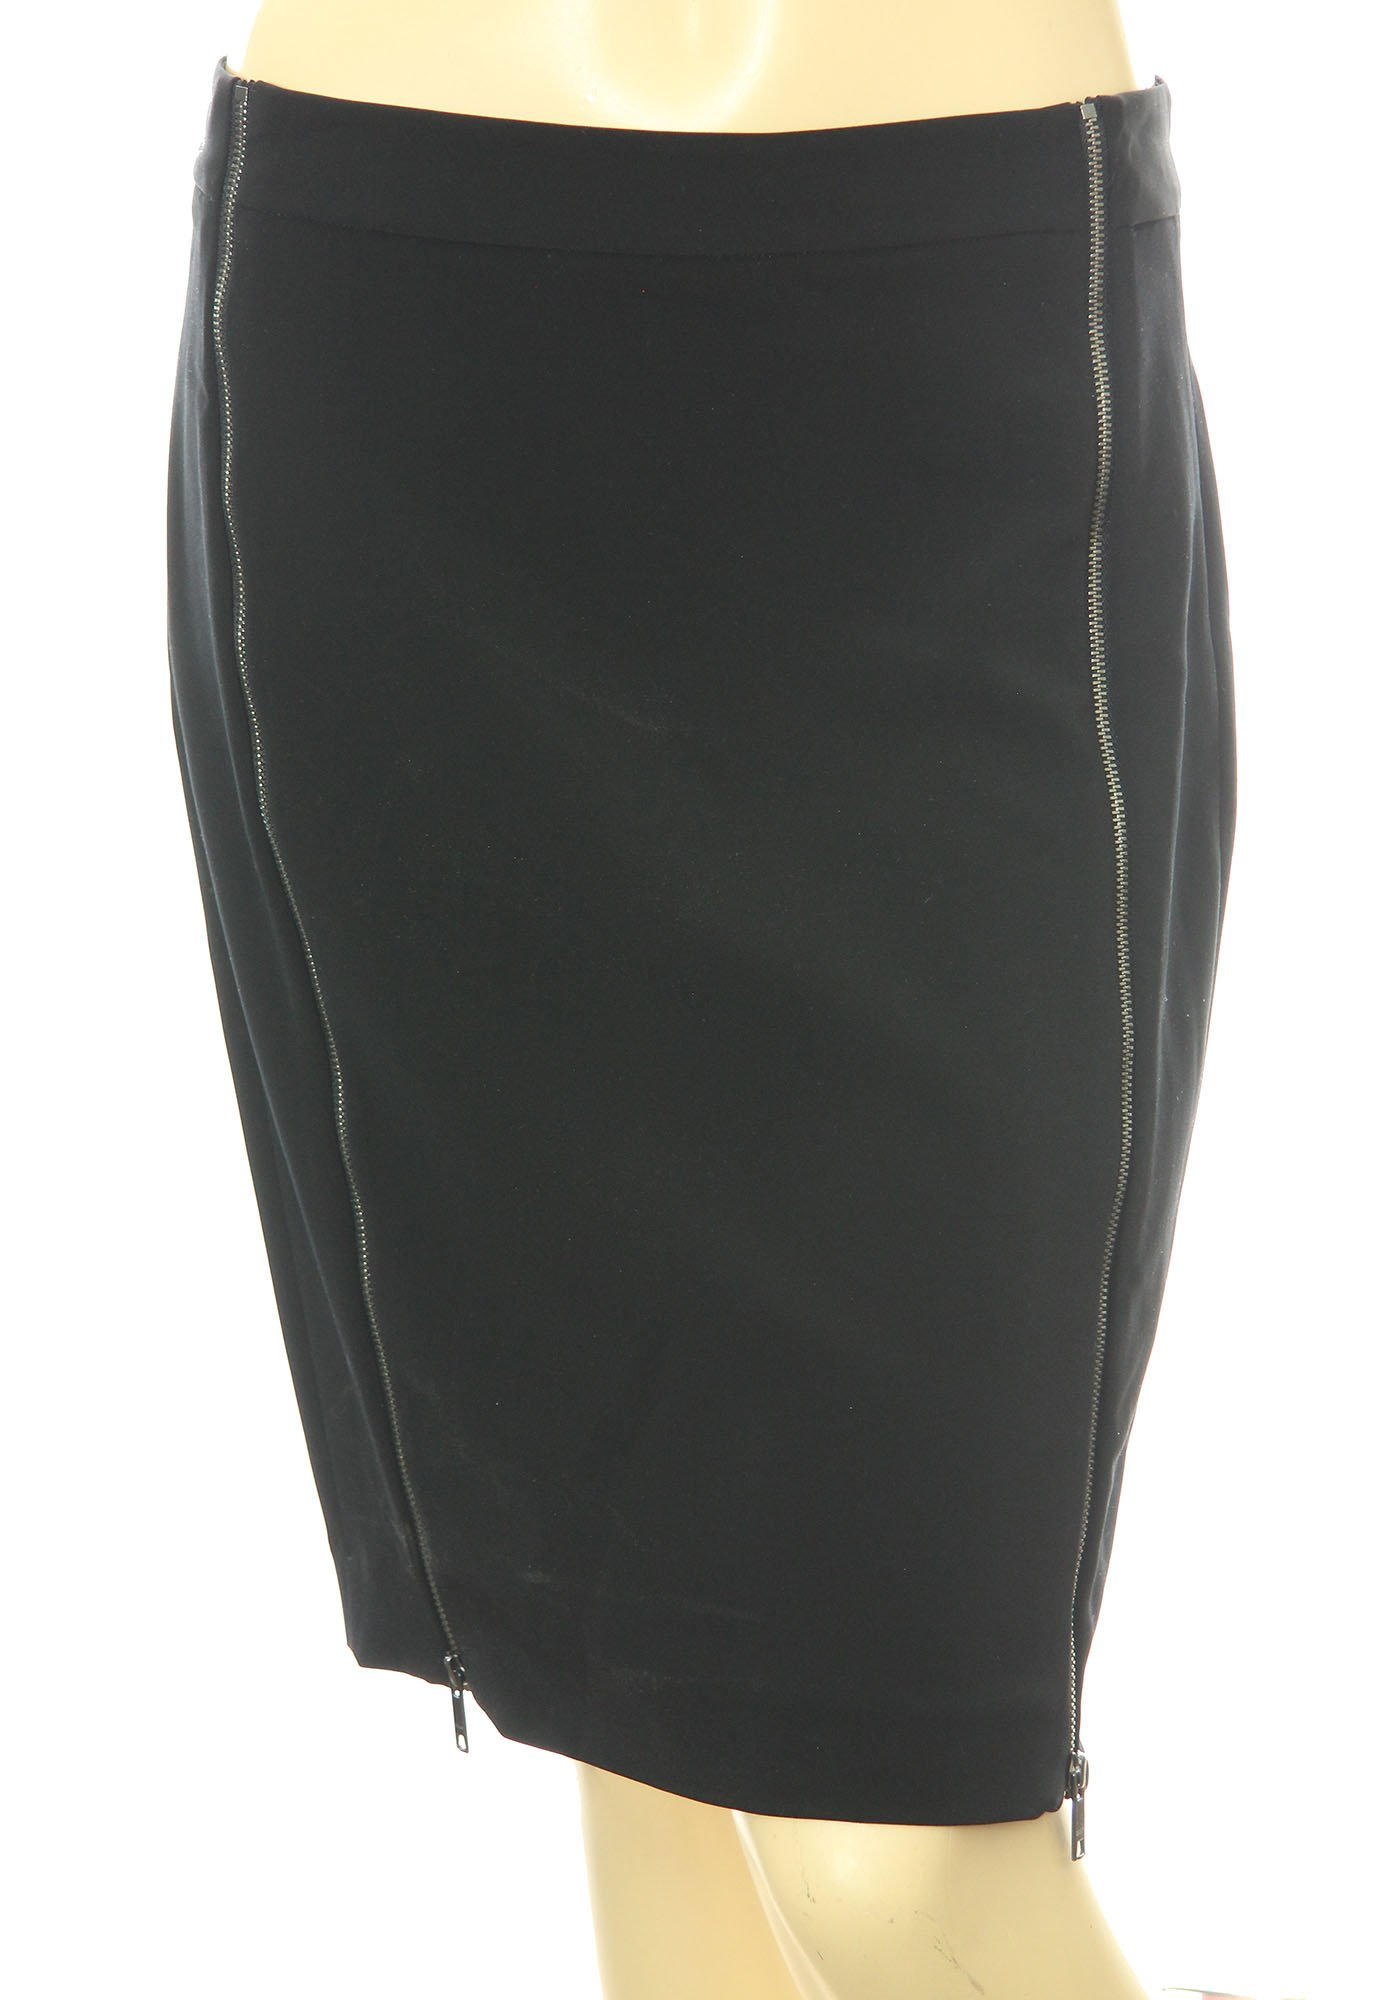 DKNY Women's Zipper Detail Skirt 6 Black